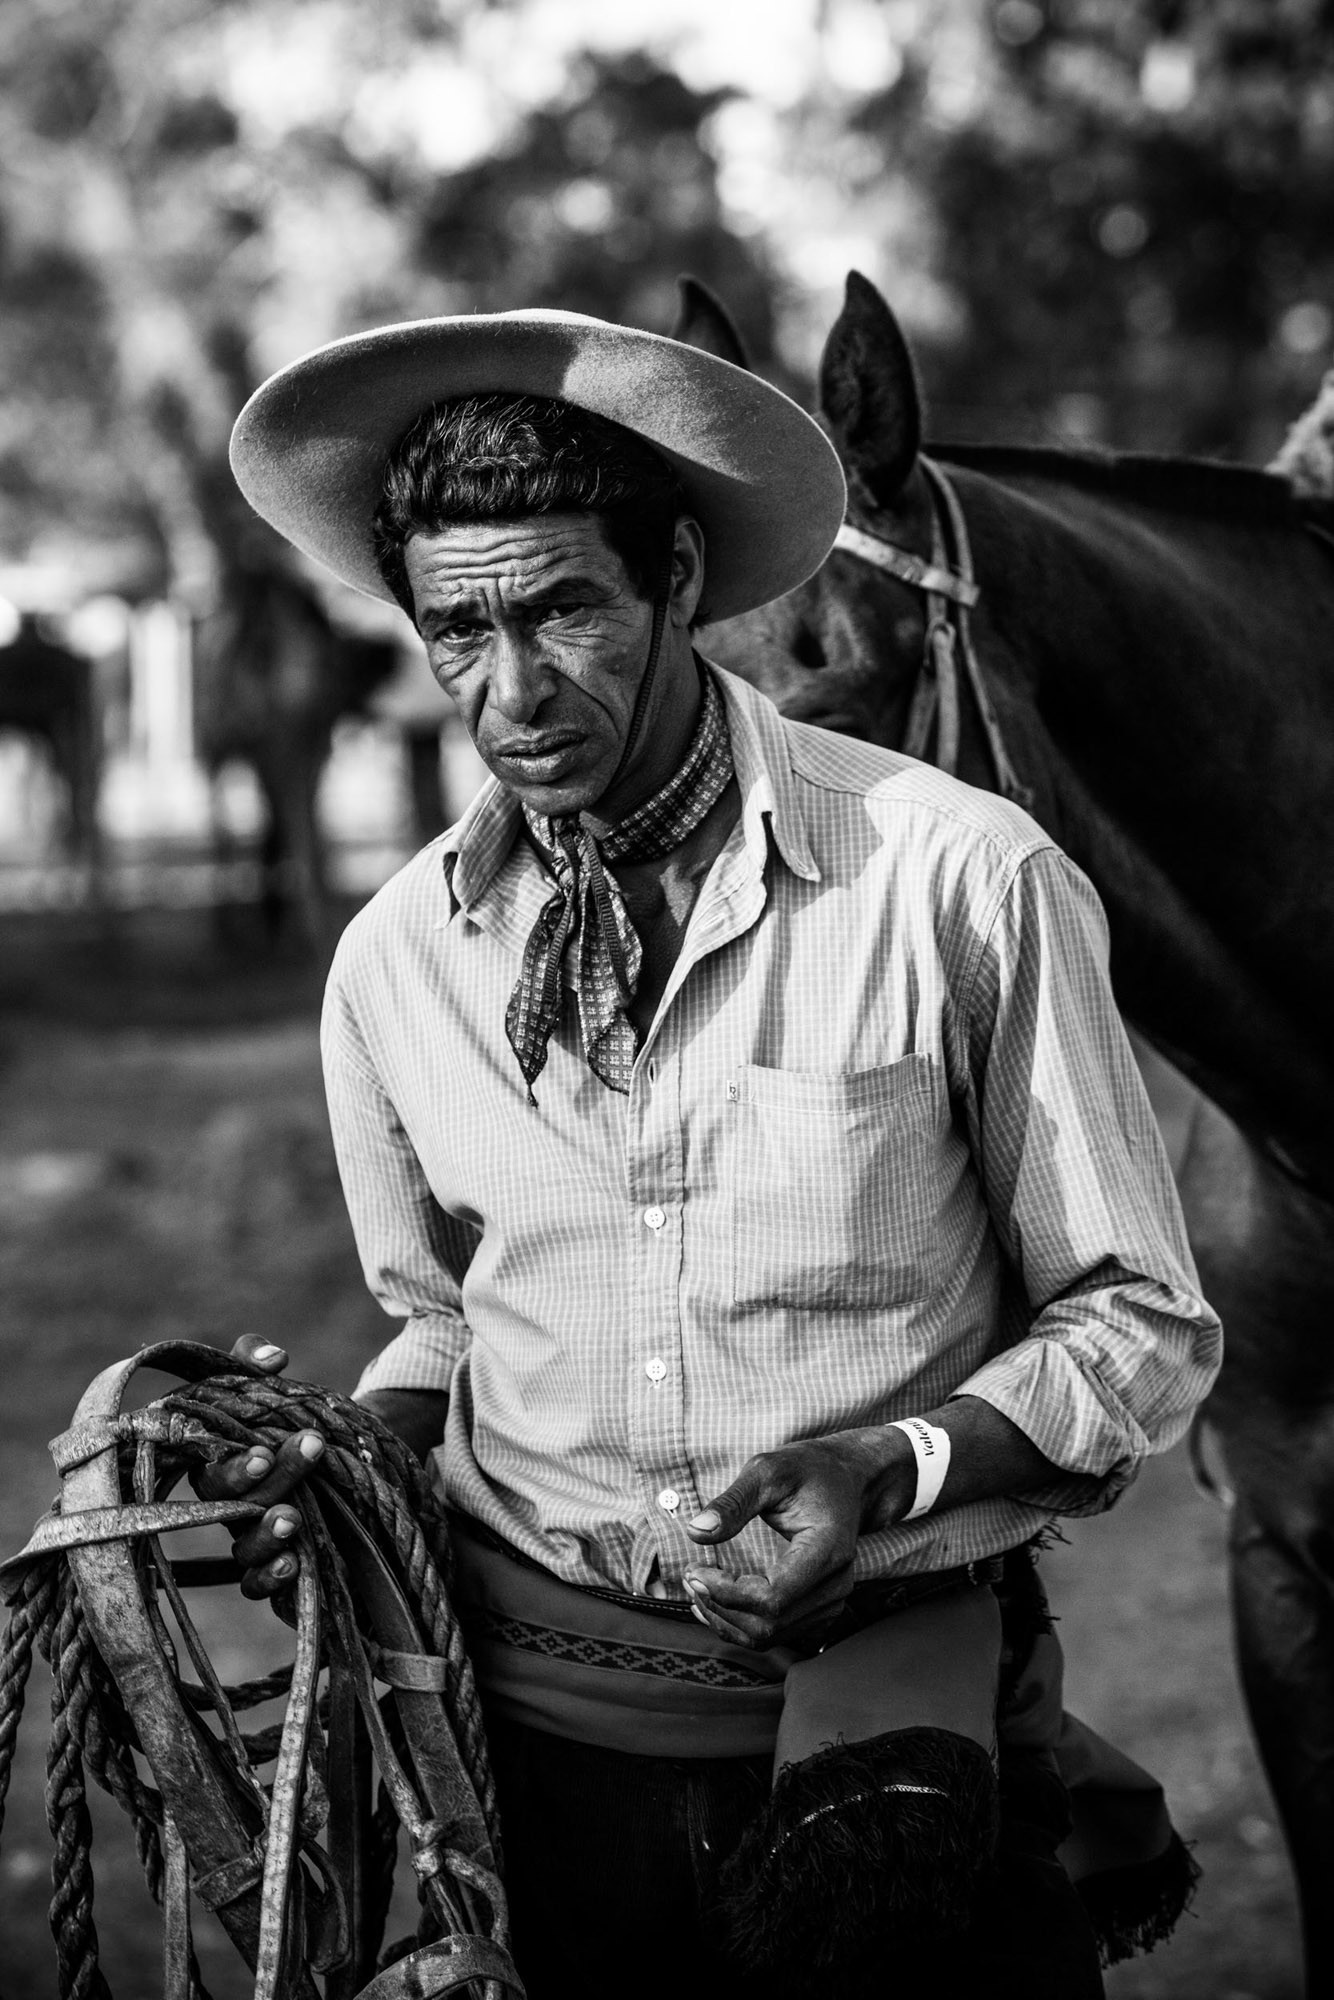 This gaucho made a new set of reins and lariat from cowhide for one of the regional criollas, or rodeo gatherings that draw competitors from every part of Uruguay on weekends. ©James Fisher 2017 All Rights Reserved